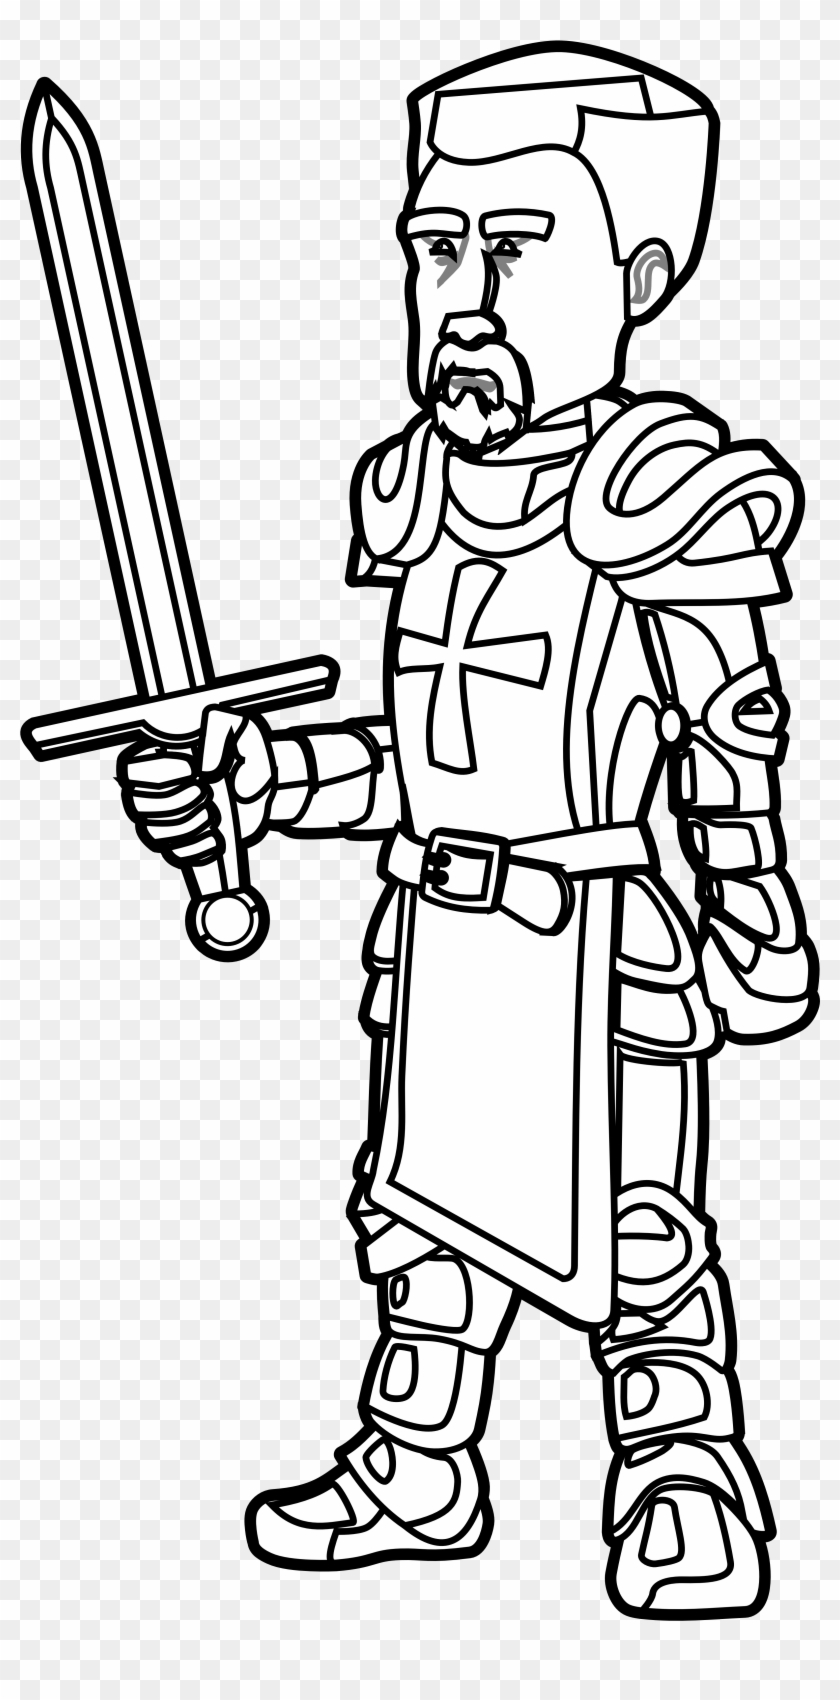 Peasant clipart black and white graphic library Can Use For Book Cover, Peasant Clipart Black And White - Knight ... graphic library